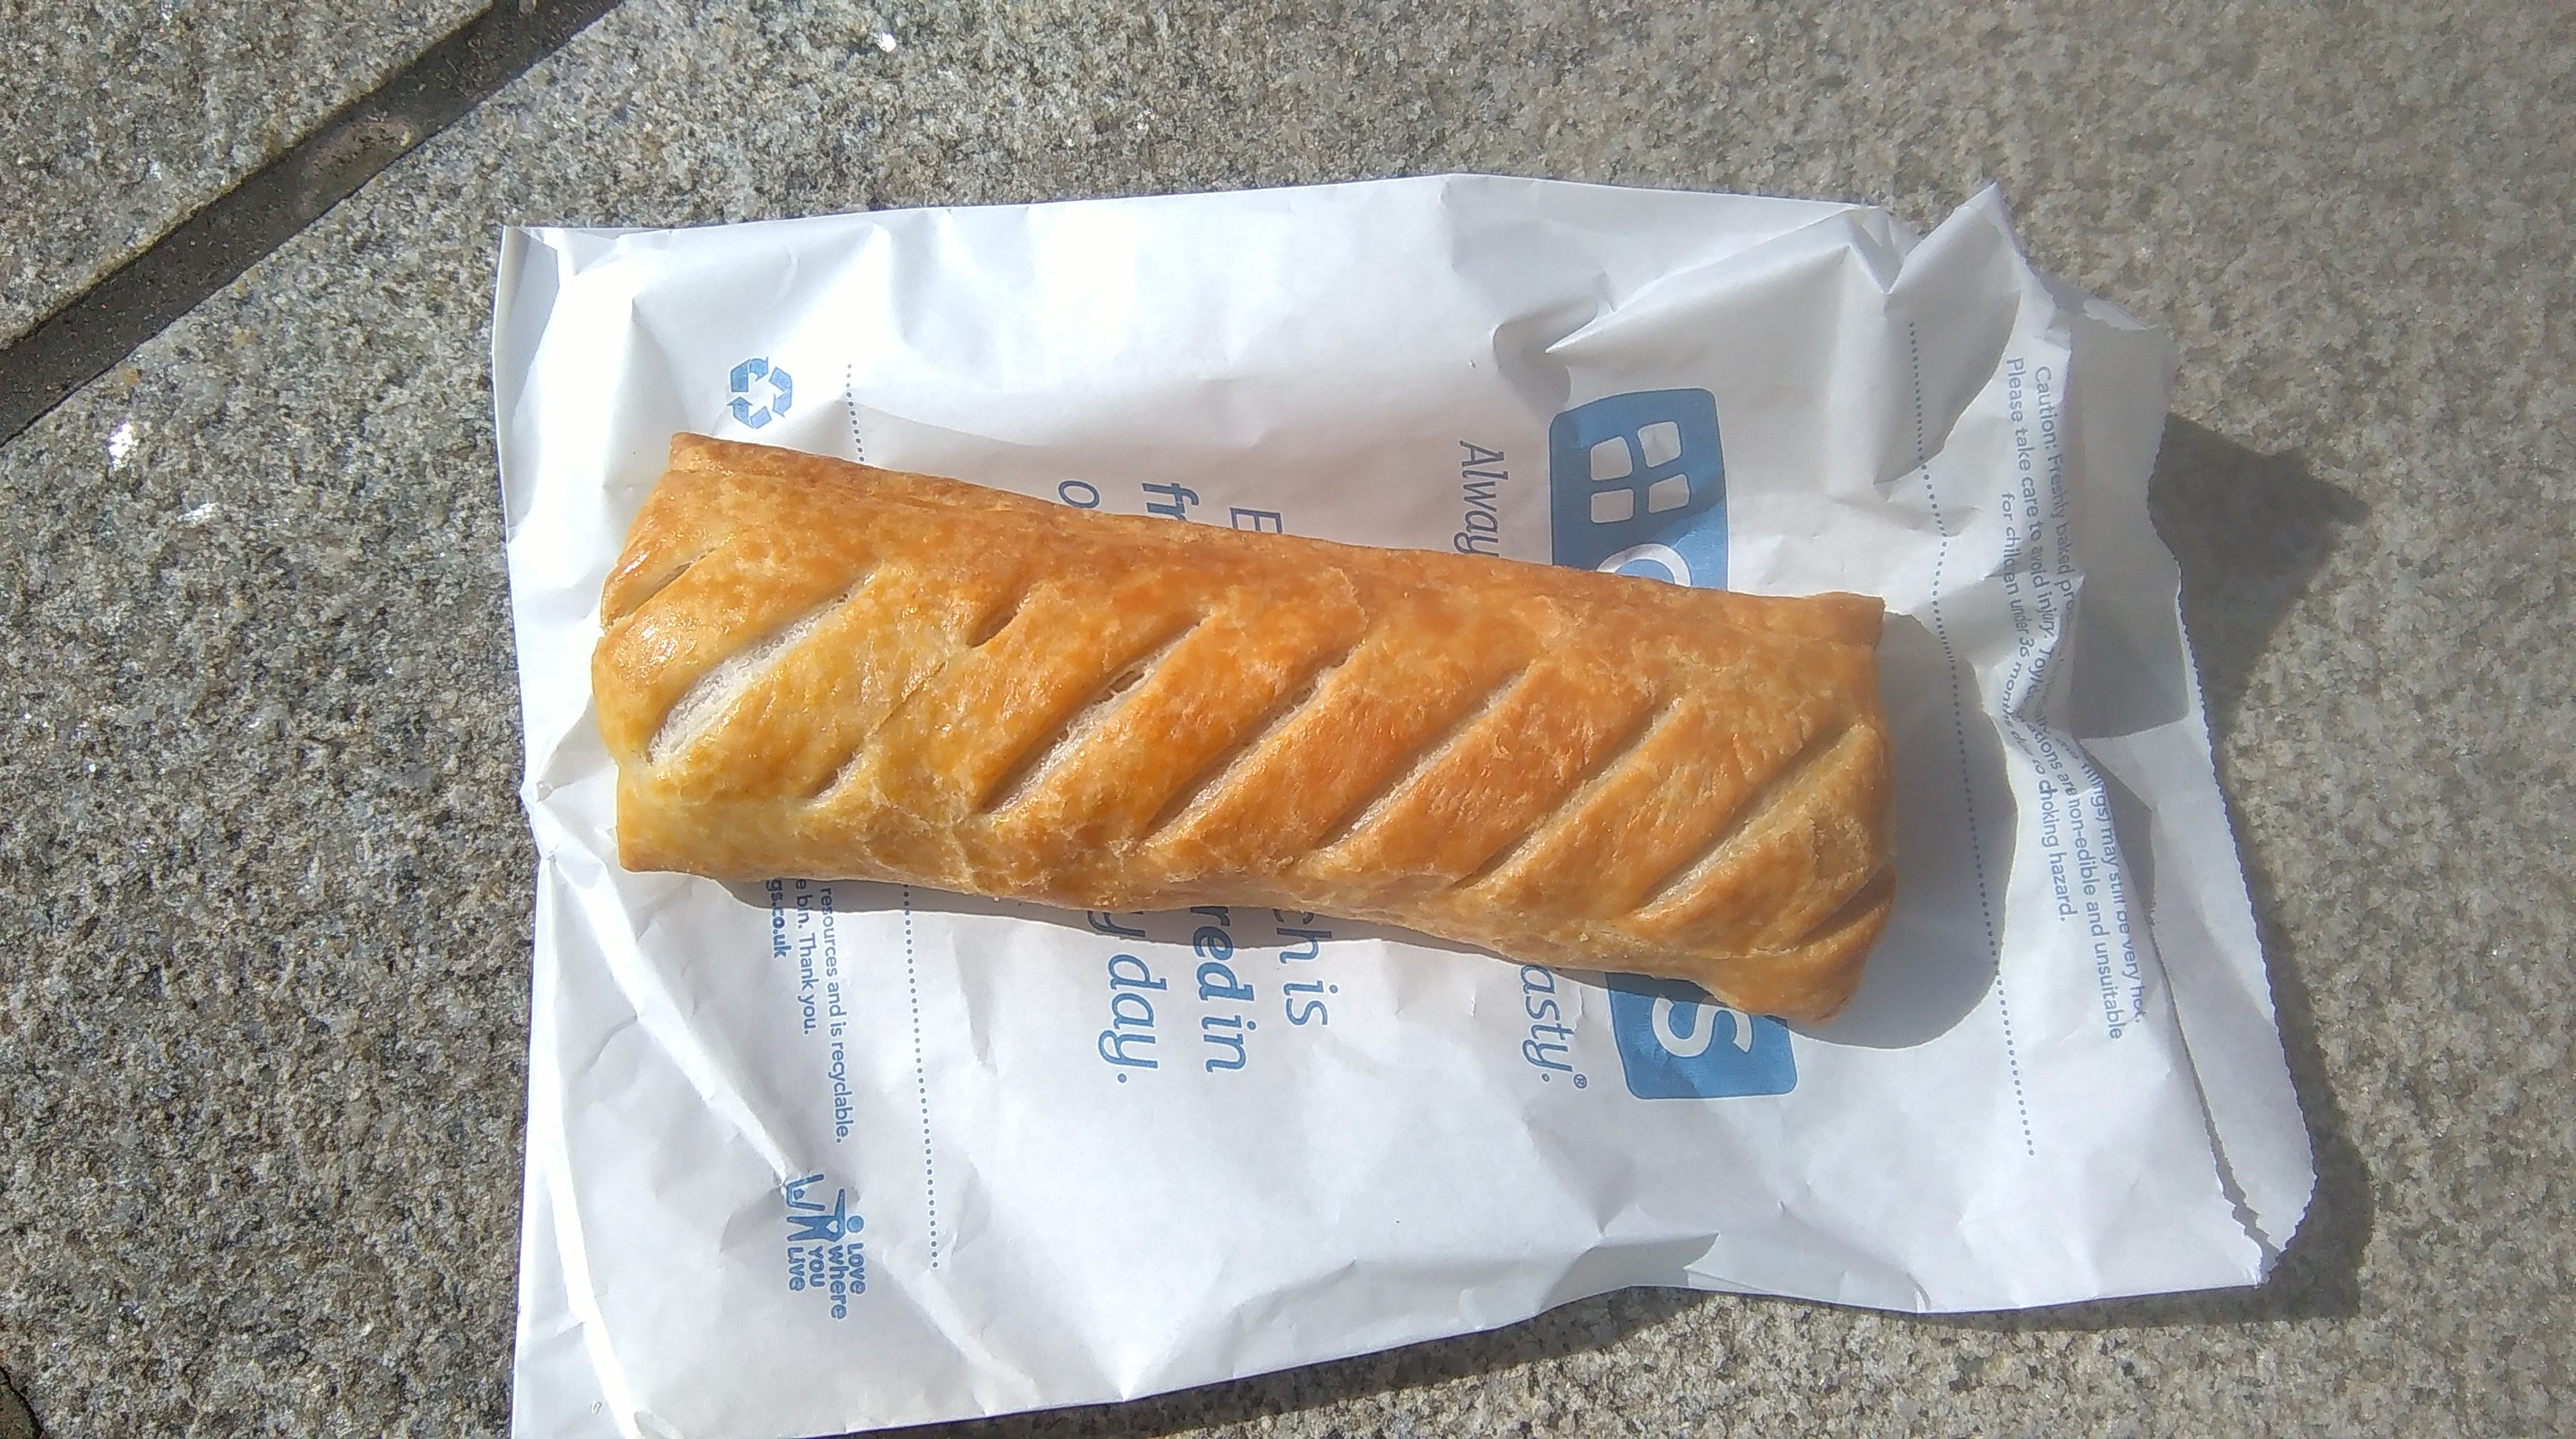 Greggs is trialling a delivery service in London